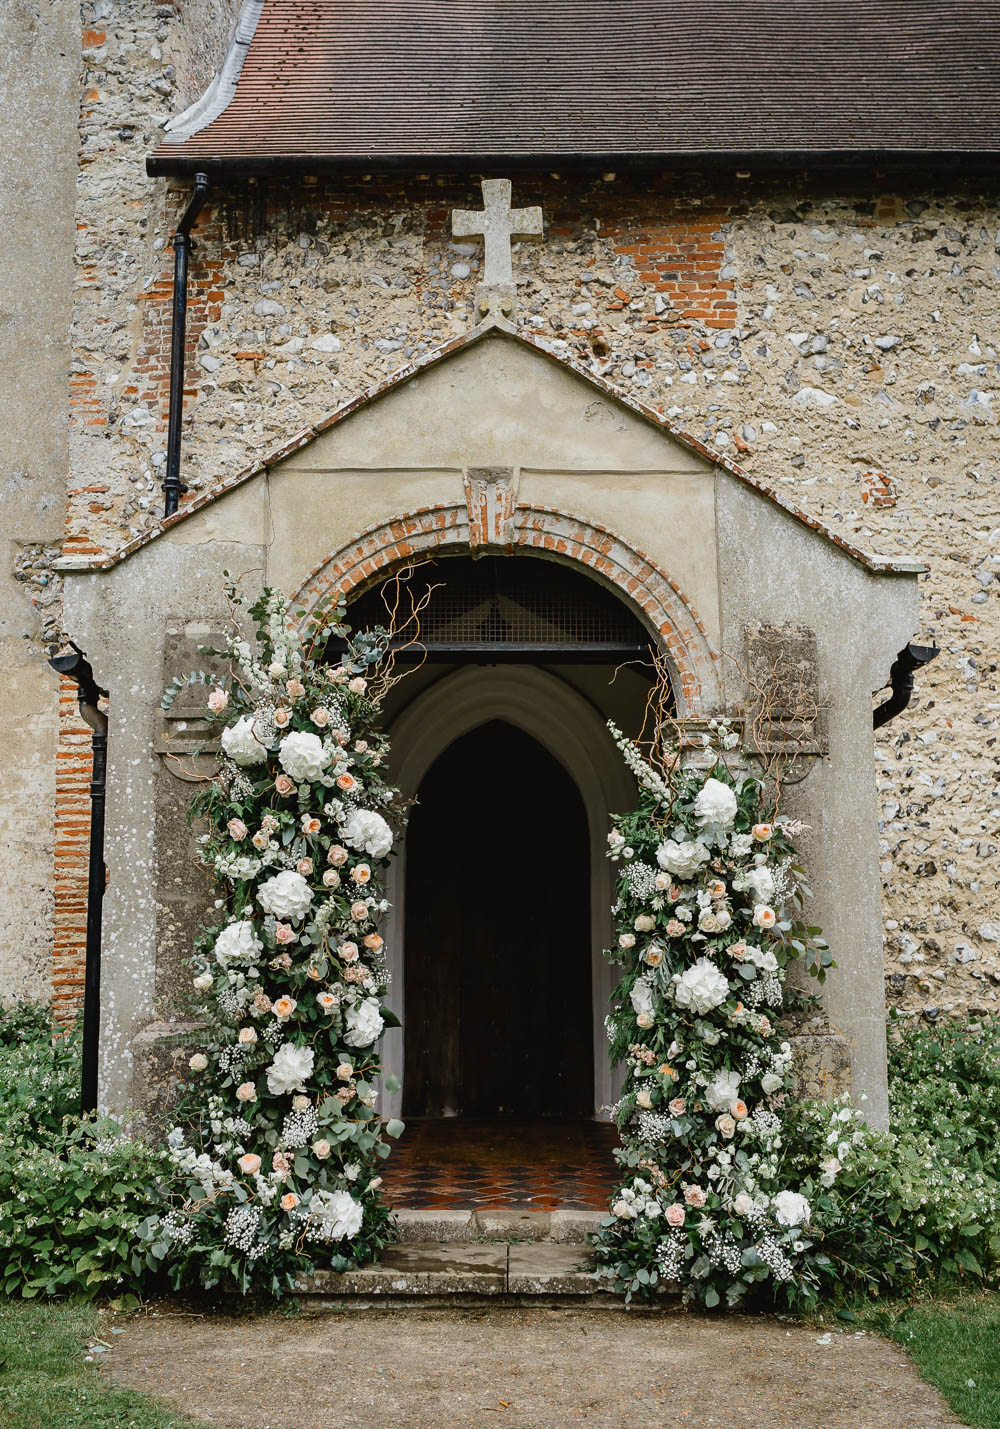 Church Flowers Arch Entrance Door Installation Backdrop Greenery Foliage Wild Natural Oxnead Hall Wedding Luis Holden Photography